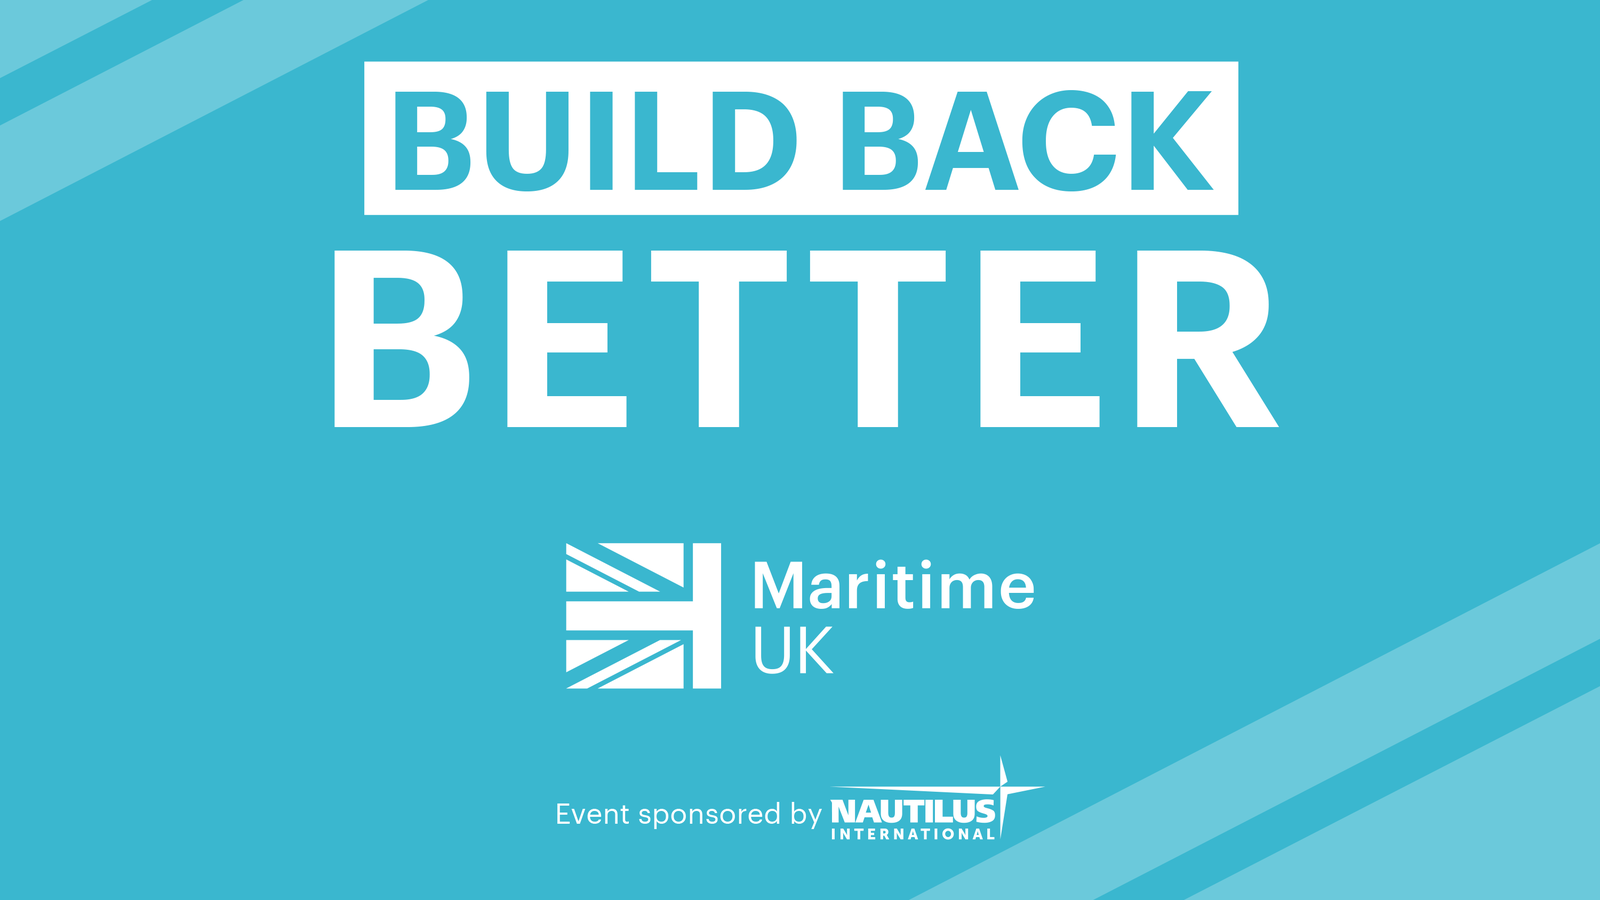 Build Back Better: What does it mean for maritime?